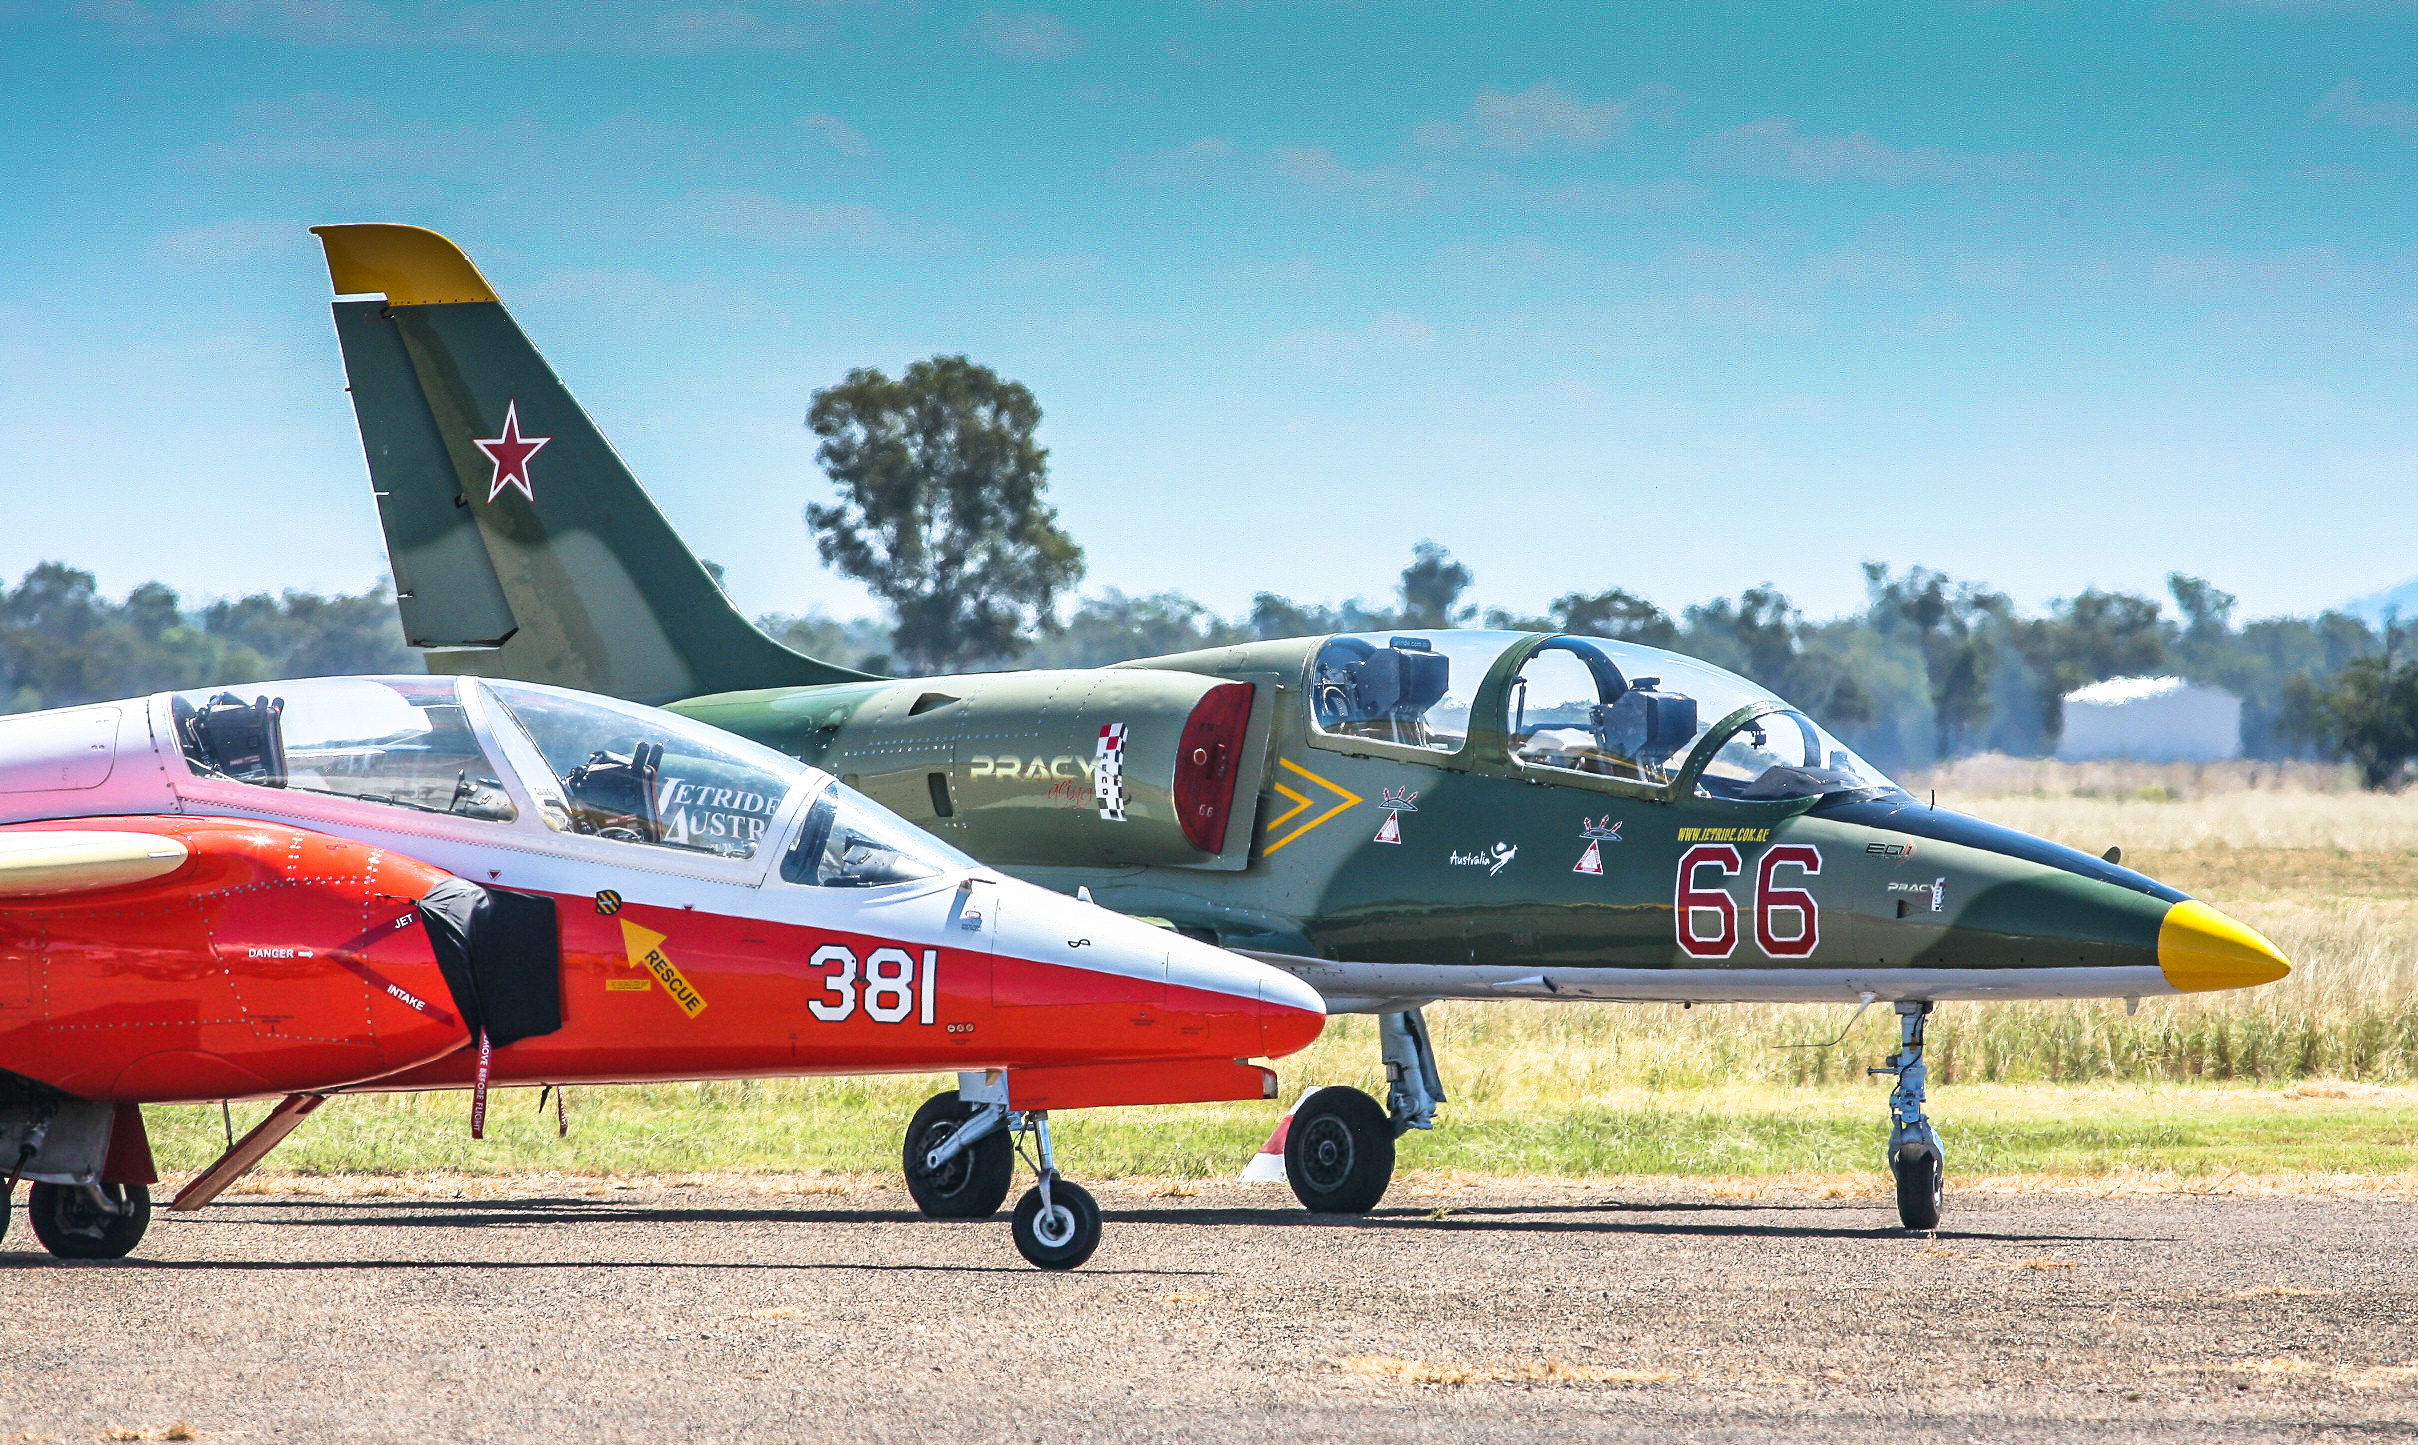 The SIAI-Marchetti (forground) and L-39. David Gale flew them both ably over the course of the show. (photo by Phil Buckley)